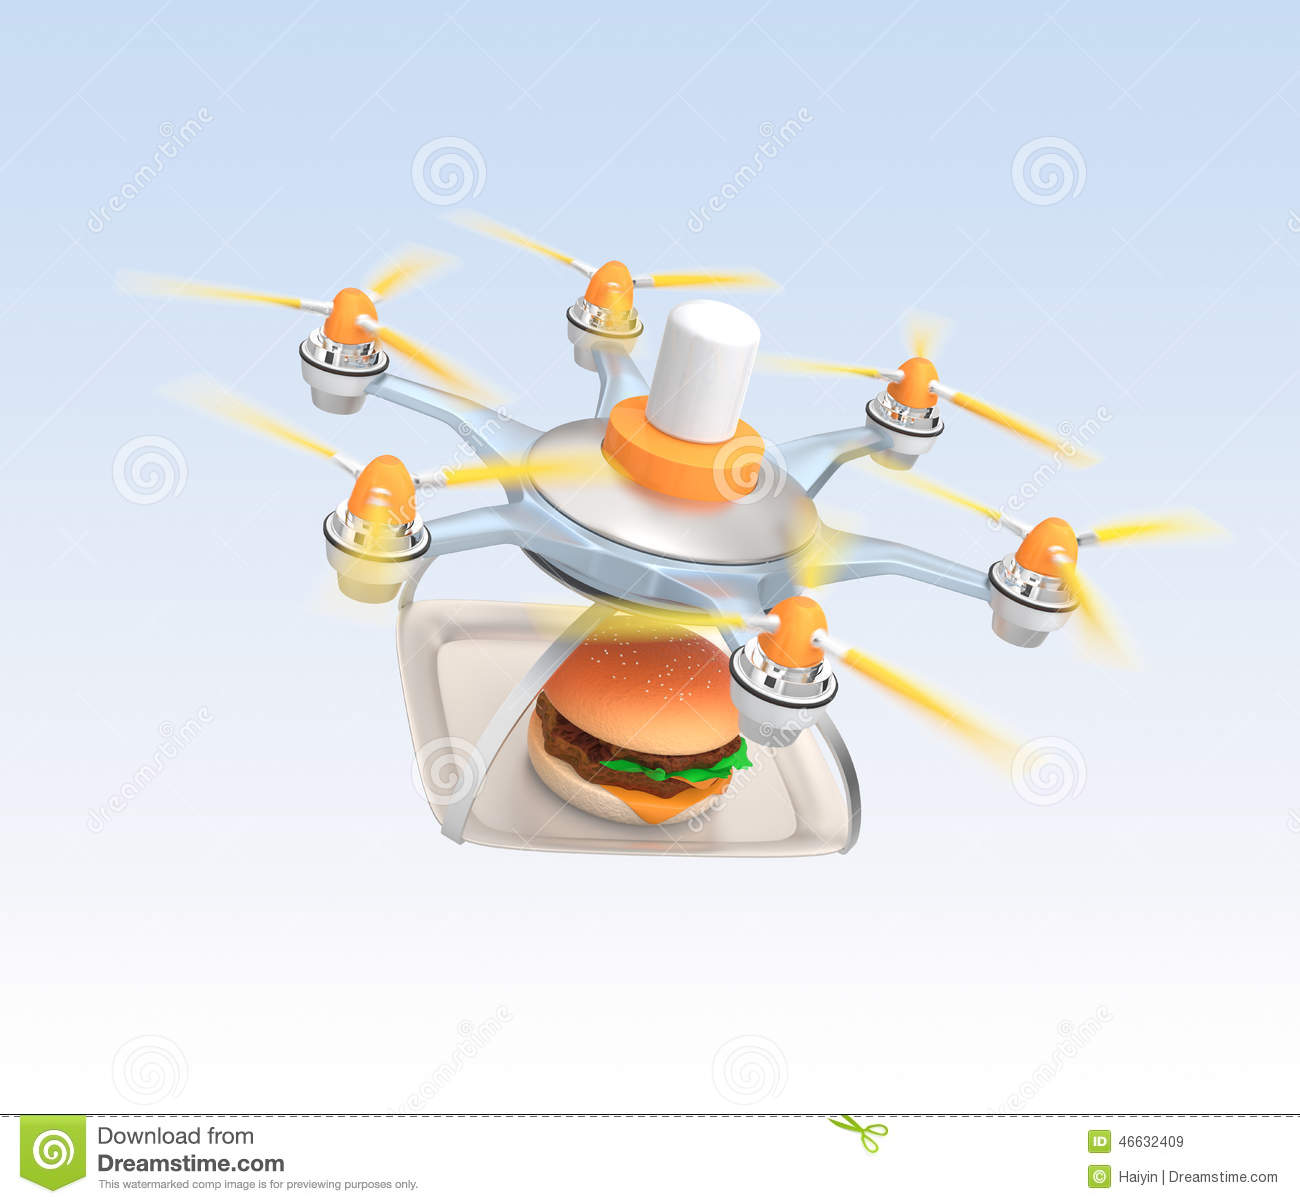 6 propeller drone with Stock Photo Drone Carrying Hamburger Fast Food Delivery Concept Image46632409 on DJI Phantom 3 Professional additionally Luftwaffe Flight 1948 278089976 as well 900mm 6 Axis Folding Carbon Fiber 60069858262 in addition Stock Photo Drone Carrying Hamburger Fast Food Delivery Concept Image46632409 as well Stock Illustration Drone Flying Air Quadrocopter Logo Icon Vector Illustration Image66564069.